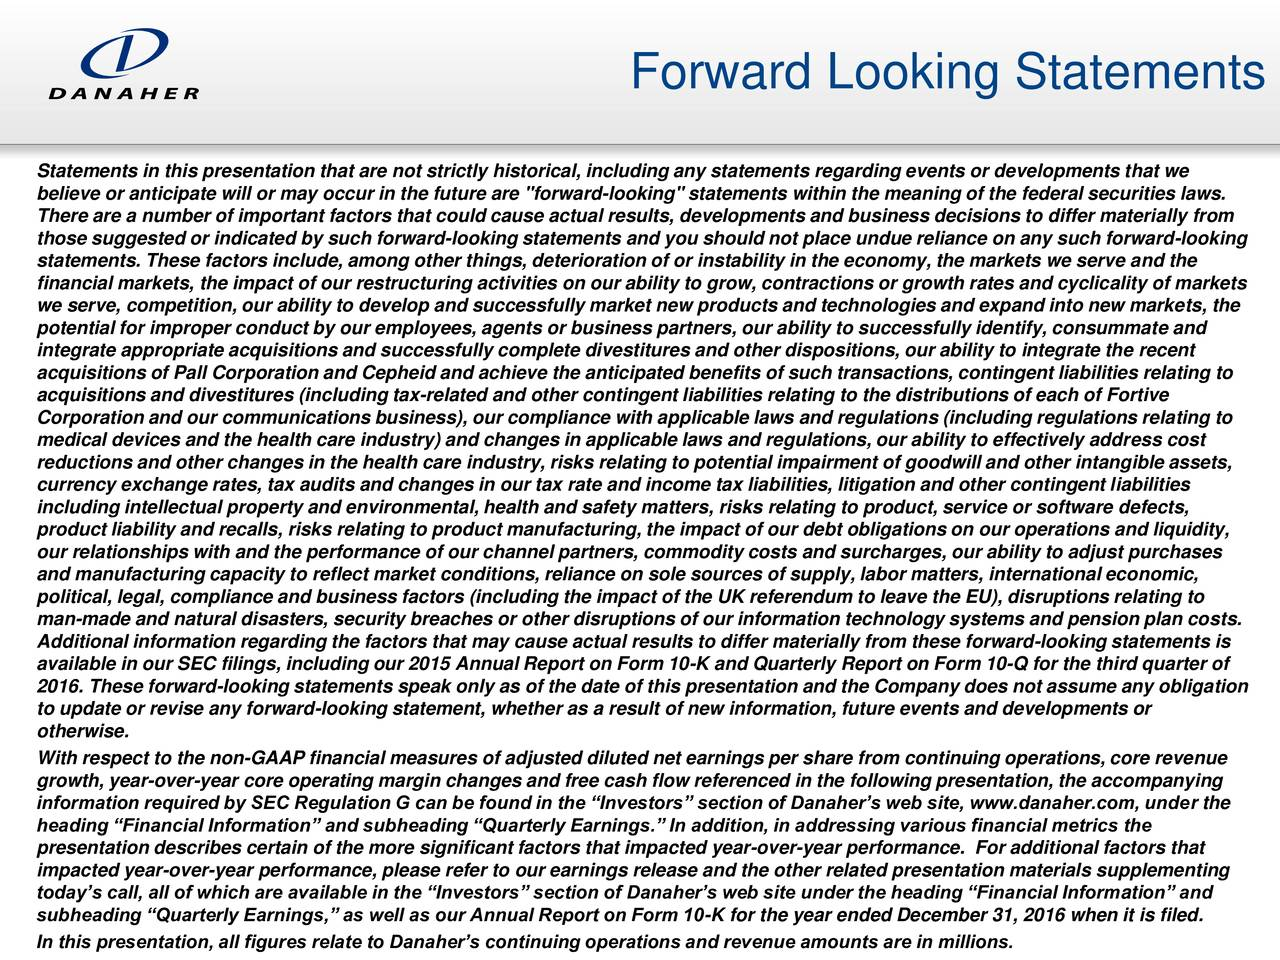 """Statements in this presentation that are not strictly historical, including any statements regarding events or developments that we believe or anticipate will or may occur in the future are """"forward-looking"""" statements within the meaning of the federal securities laws. There are a number of important factors that could cause actual results, developments and business decisions to differ materially from those suggested or indicated by such forward-looking statements and you should not place undue reliance on any such forward-looking statements. These factors include, among other things, deterioration of or instability in the economy, the markets we serve and the financial markets, the impact of our restructuring activities on our ability to grow, contractions or growth rates and cyclicality of markets we serve, competition, our ability to develop and successfully market new products and technologies and expand into new markets, the potential for improper conduct by our employees, agents or business partners, our ability to successfully identify, consummate and integrate appropriate acquisitions and successfully complete divestitures and other dispositions, our ability to integrate the recent acquisitions of Pall Corporation and Cepheid and achieve the anticipated benefits of such transactions, contingent liabilities relating to acquisitions and divestitures (including tax-related and other contingent liabilities relating to the distributions of each of Fortive Corporation and our communications business), our compliance with applicable laws and regulations (including regulations relating to medical devices and the health care industry) and changes in applicable laws and regulations, our ability to effectively address cost reductions and other changes in the health care industry, risks relating to potential impairment of goodwill and other intangible assets, currency exchange rates, tax audits and changes in our tax rate and income tax liabilities, litigation and other"""